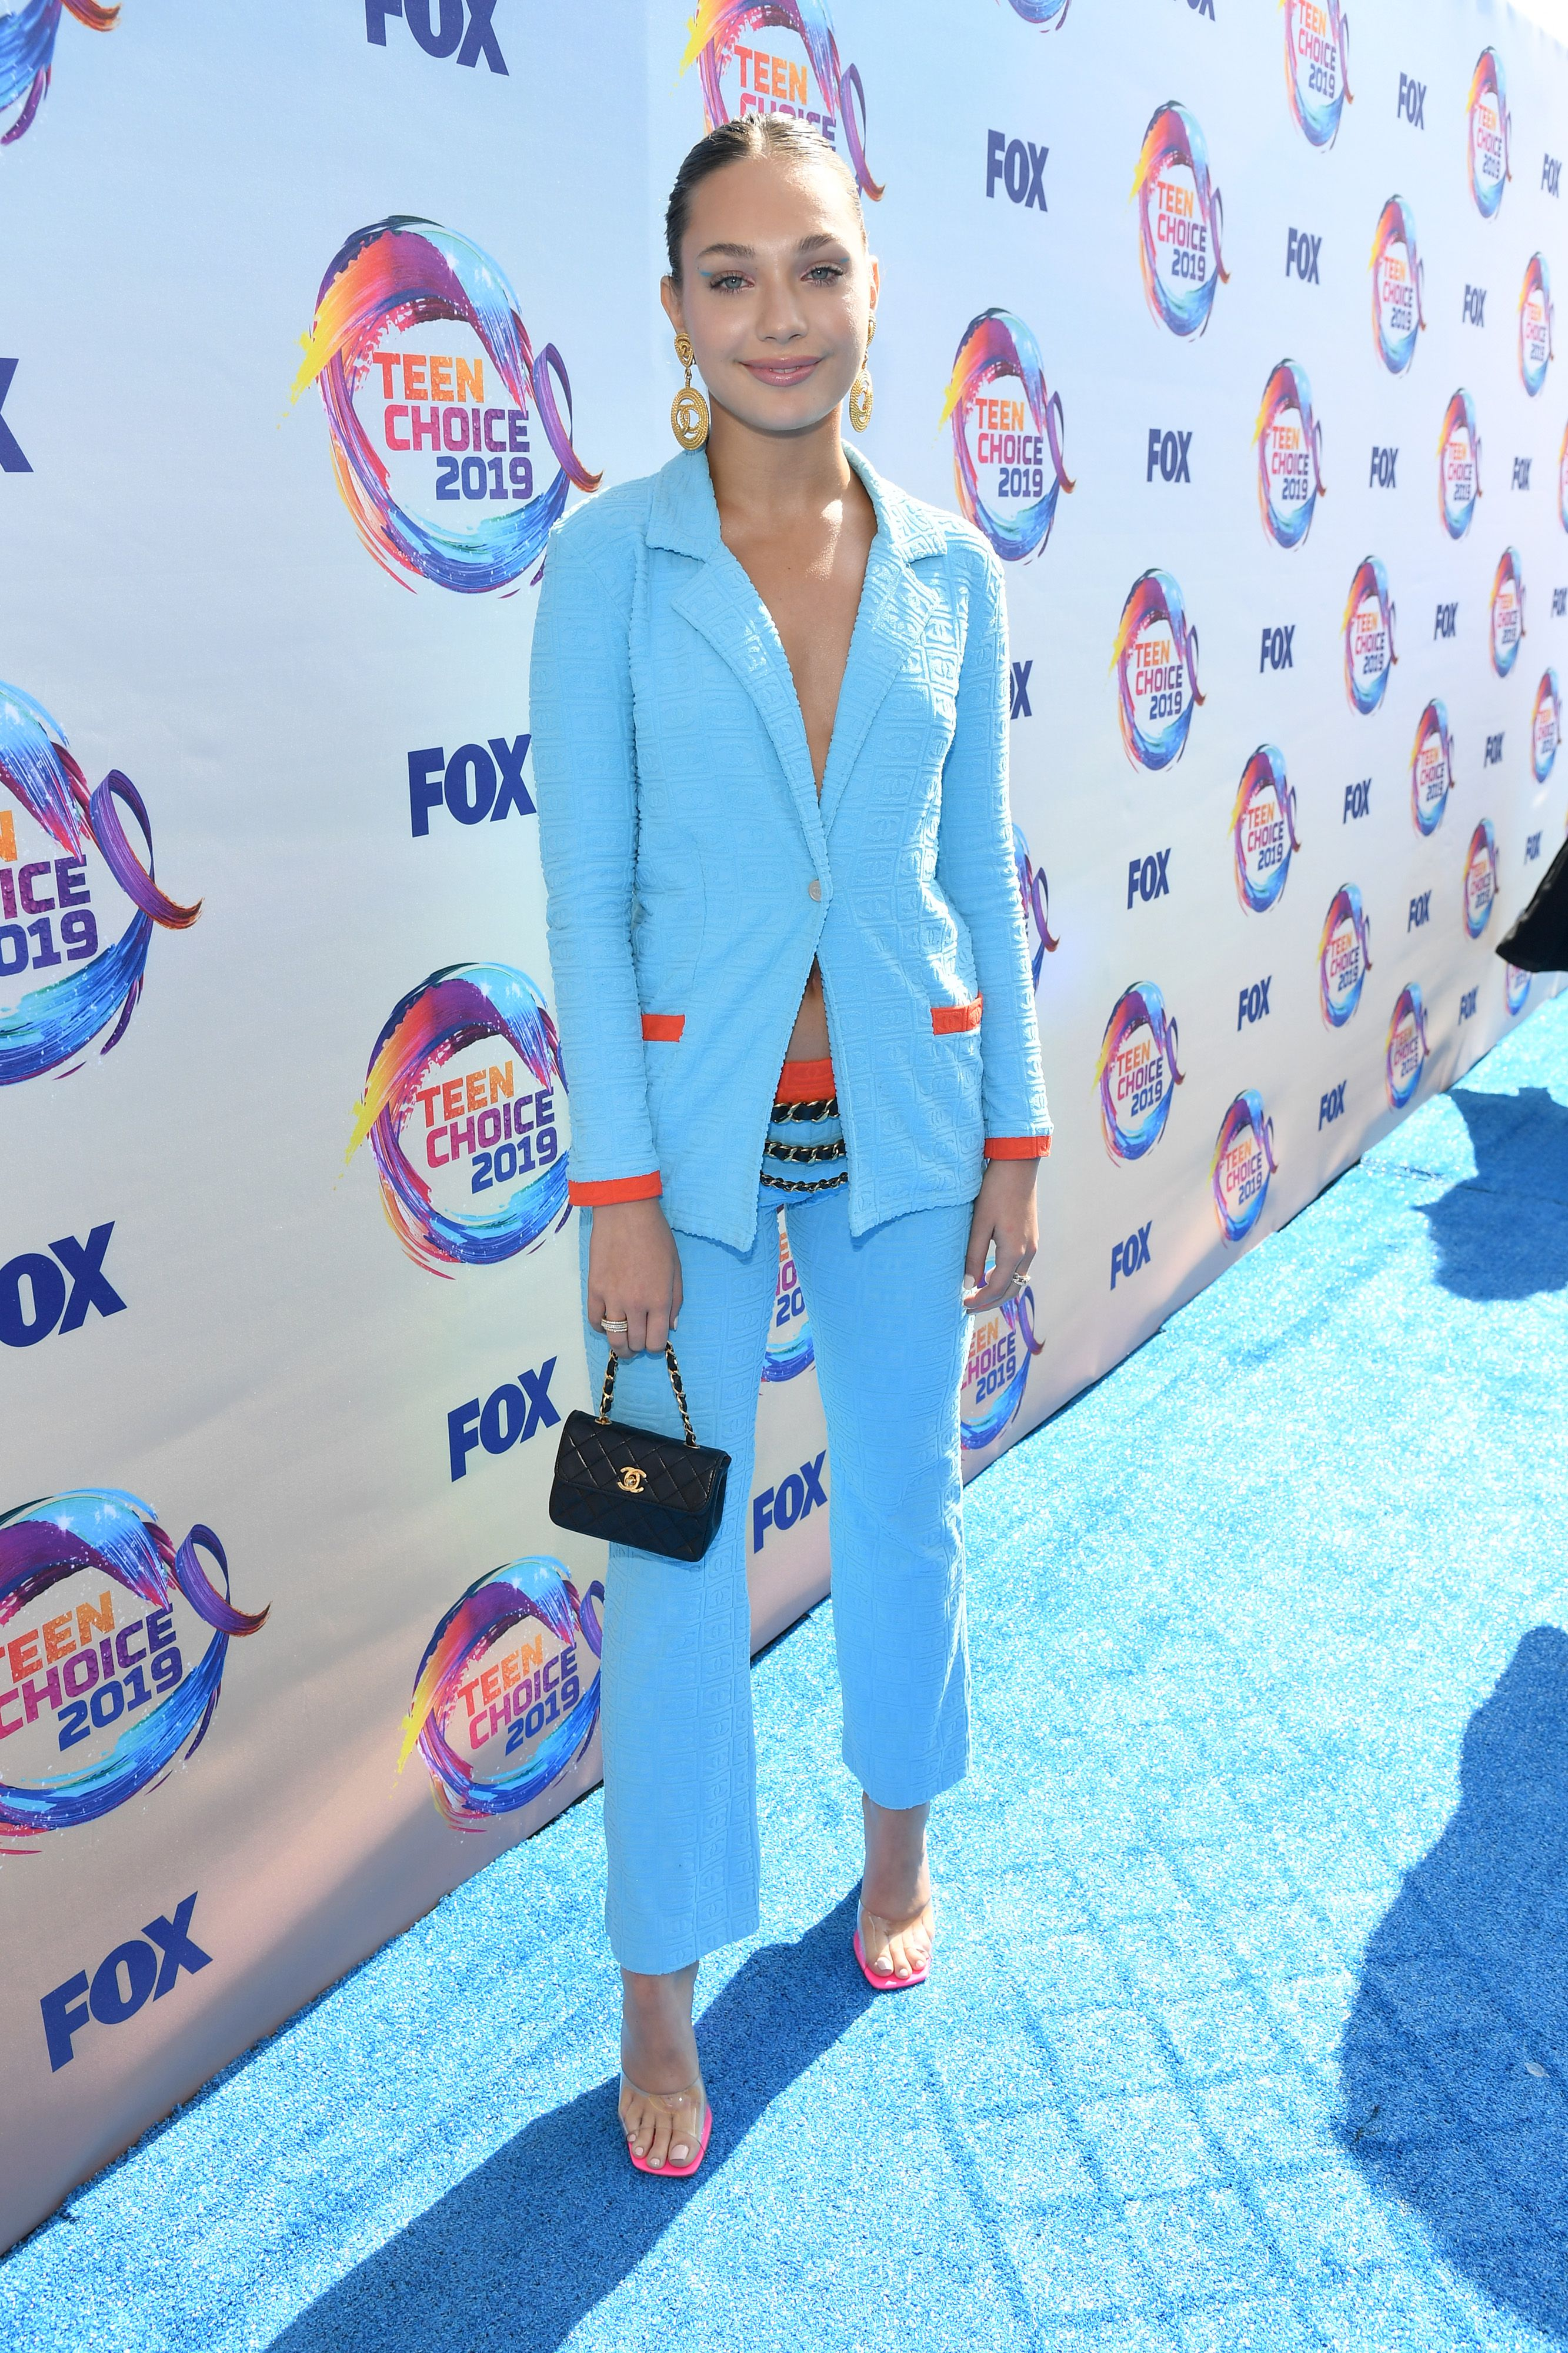 Teen Choice Awards 2019 Red Carpet: Best Dressed Celebrities